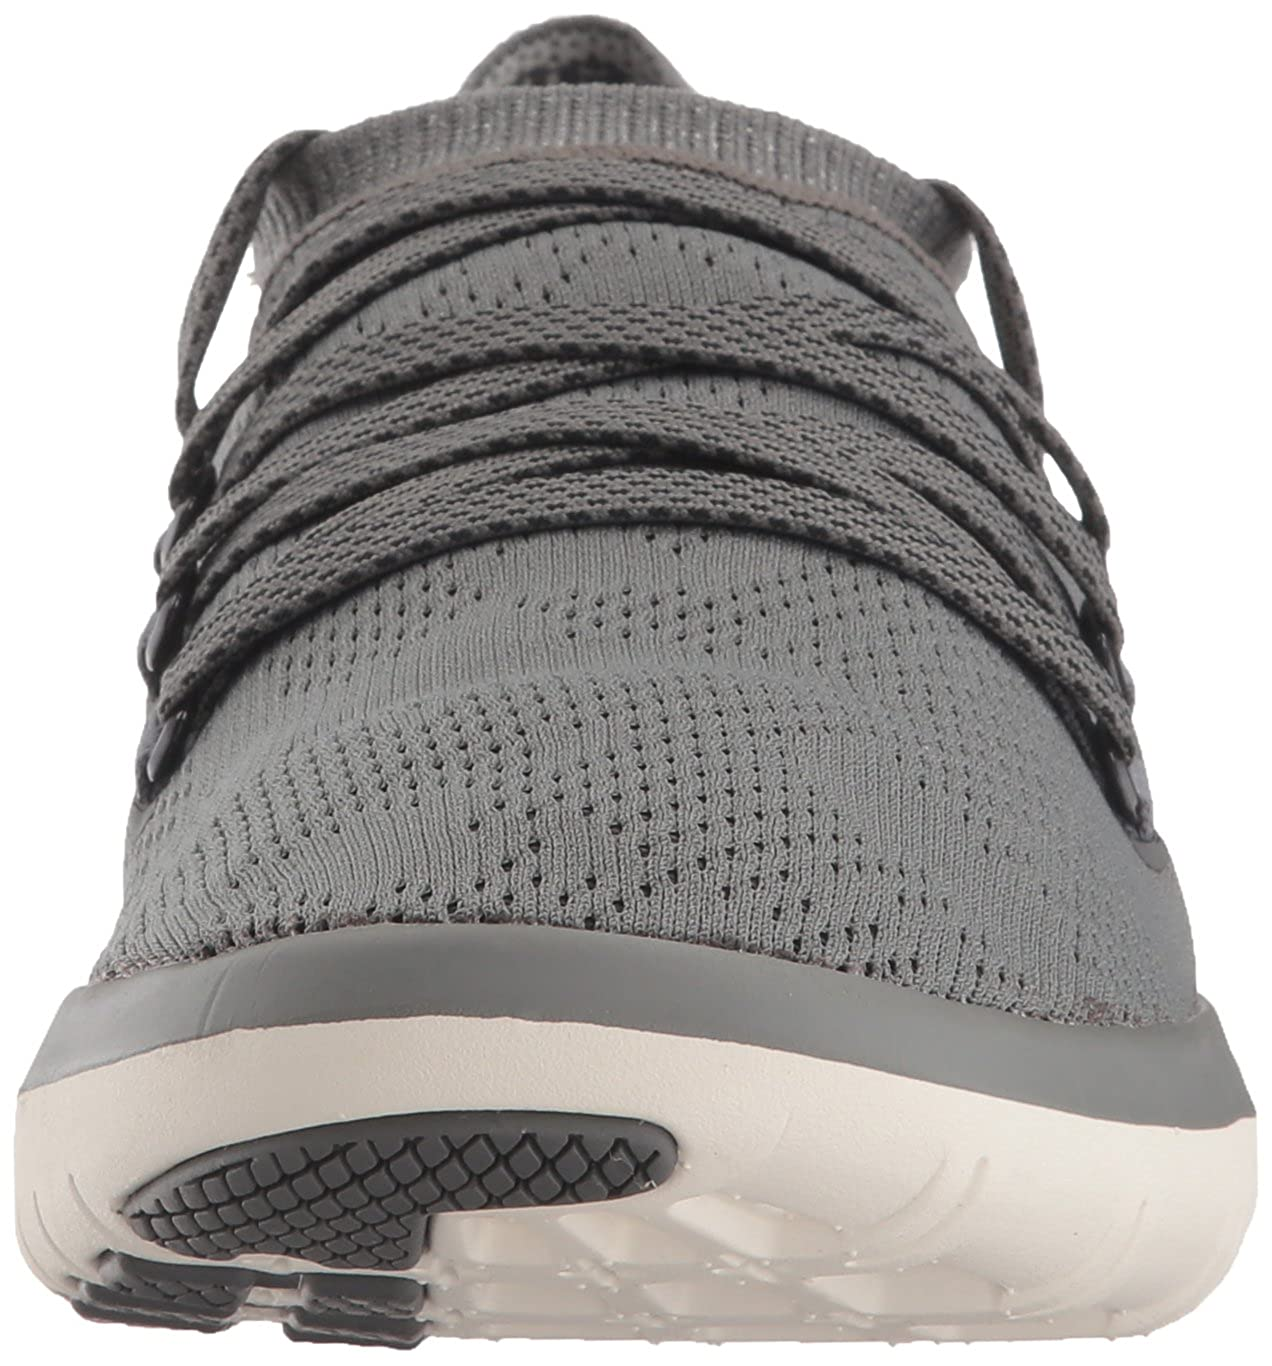 Under Armour3000099 Armour3000099 Armour3000099 - Charged CoolSwitch Refresh Damen 5f1a13